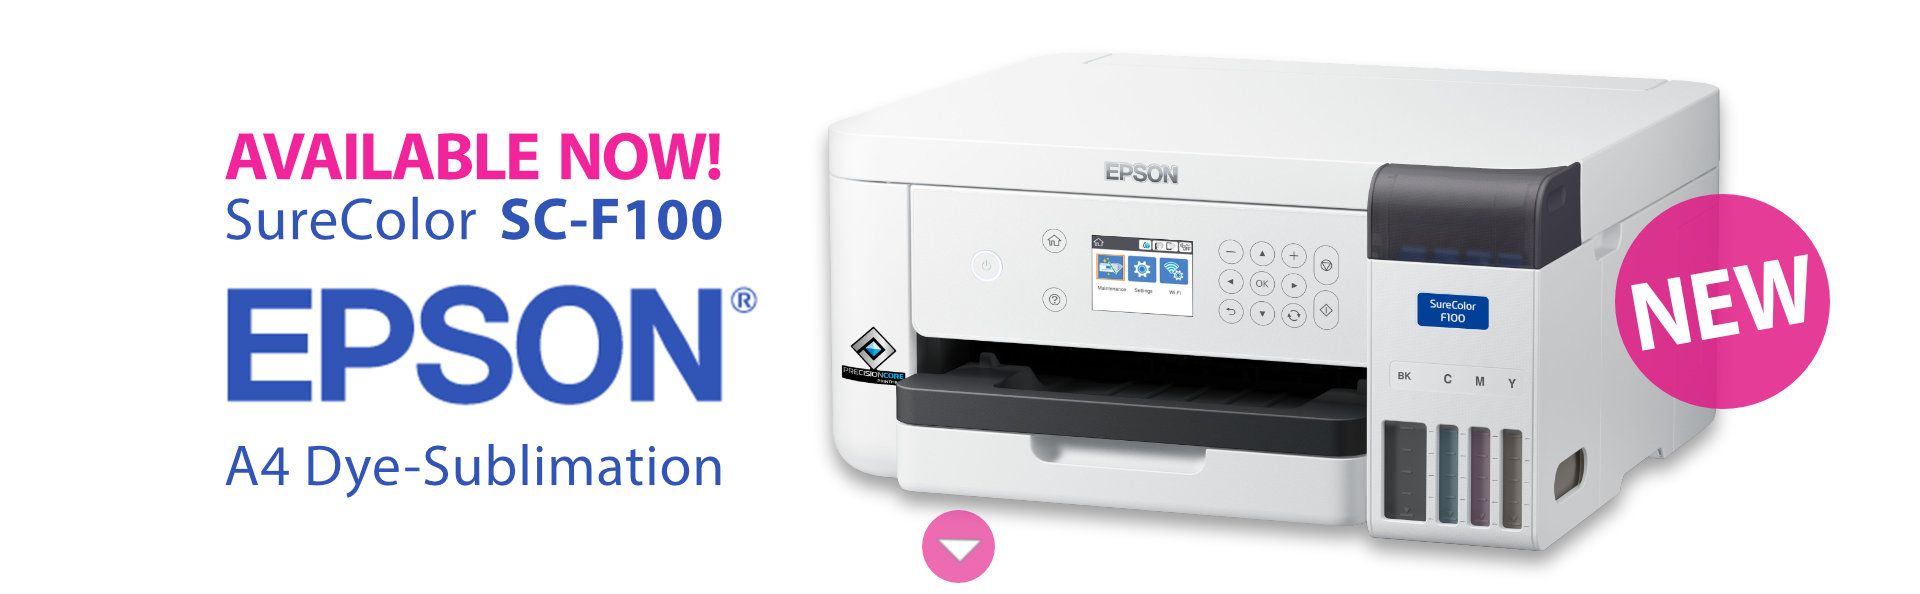 Epson F100 Printer AVAILABLE NOW!